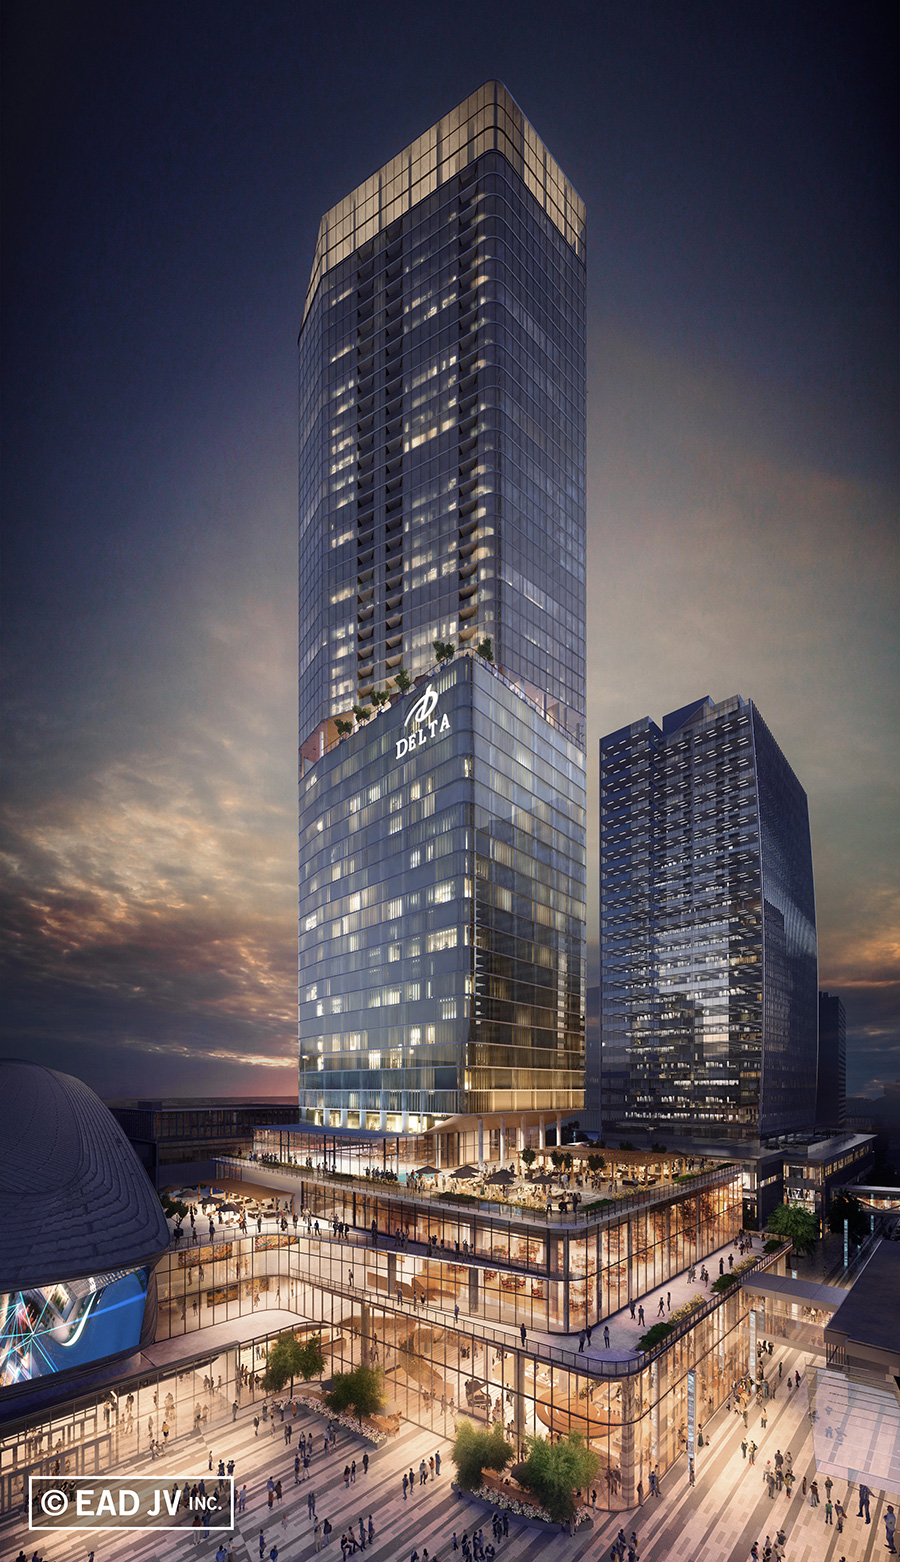 Ead Joint Venture Announces Delta Hotels And Resorts 174 As